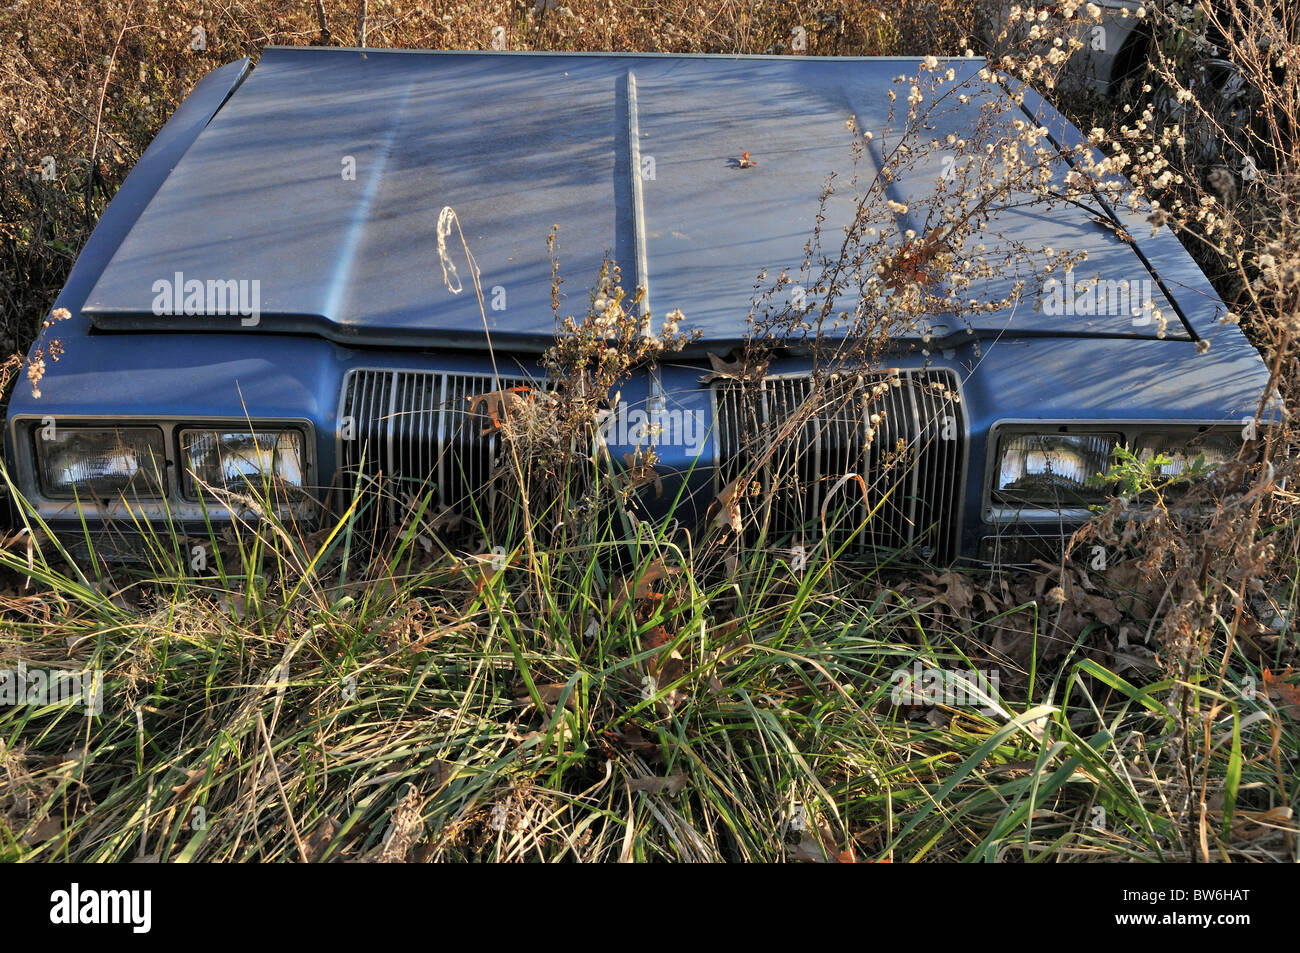 Abandoned car hood, Outdoors, Front View - Stock Image